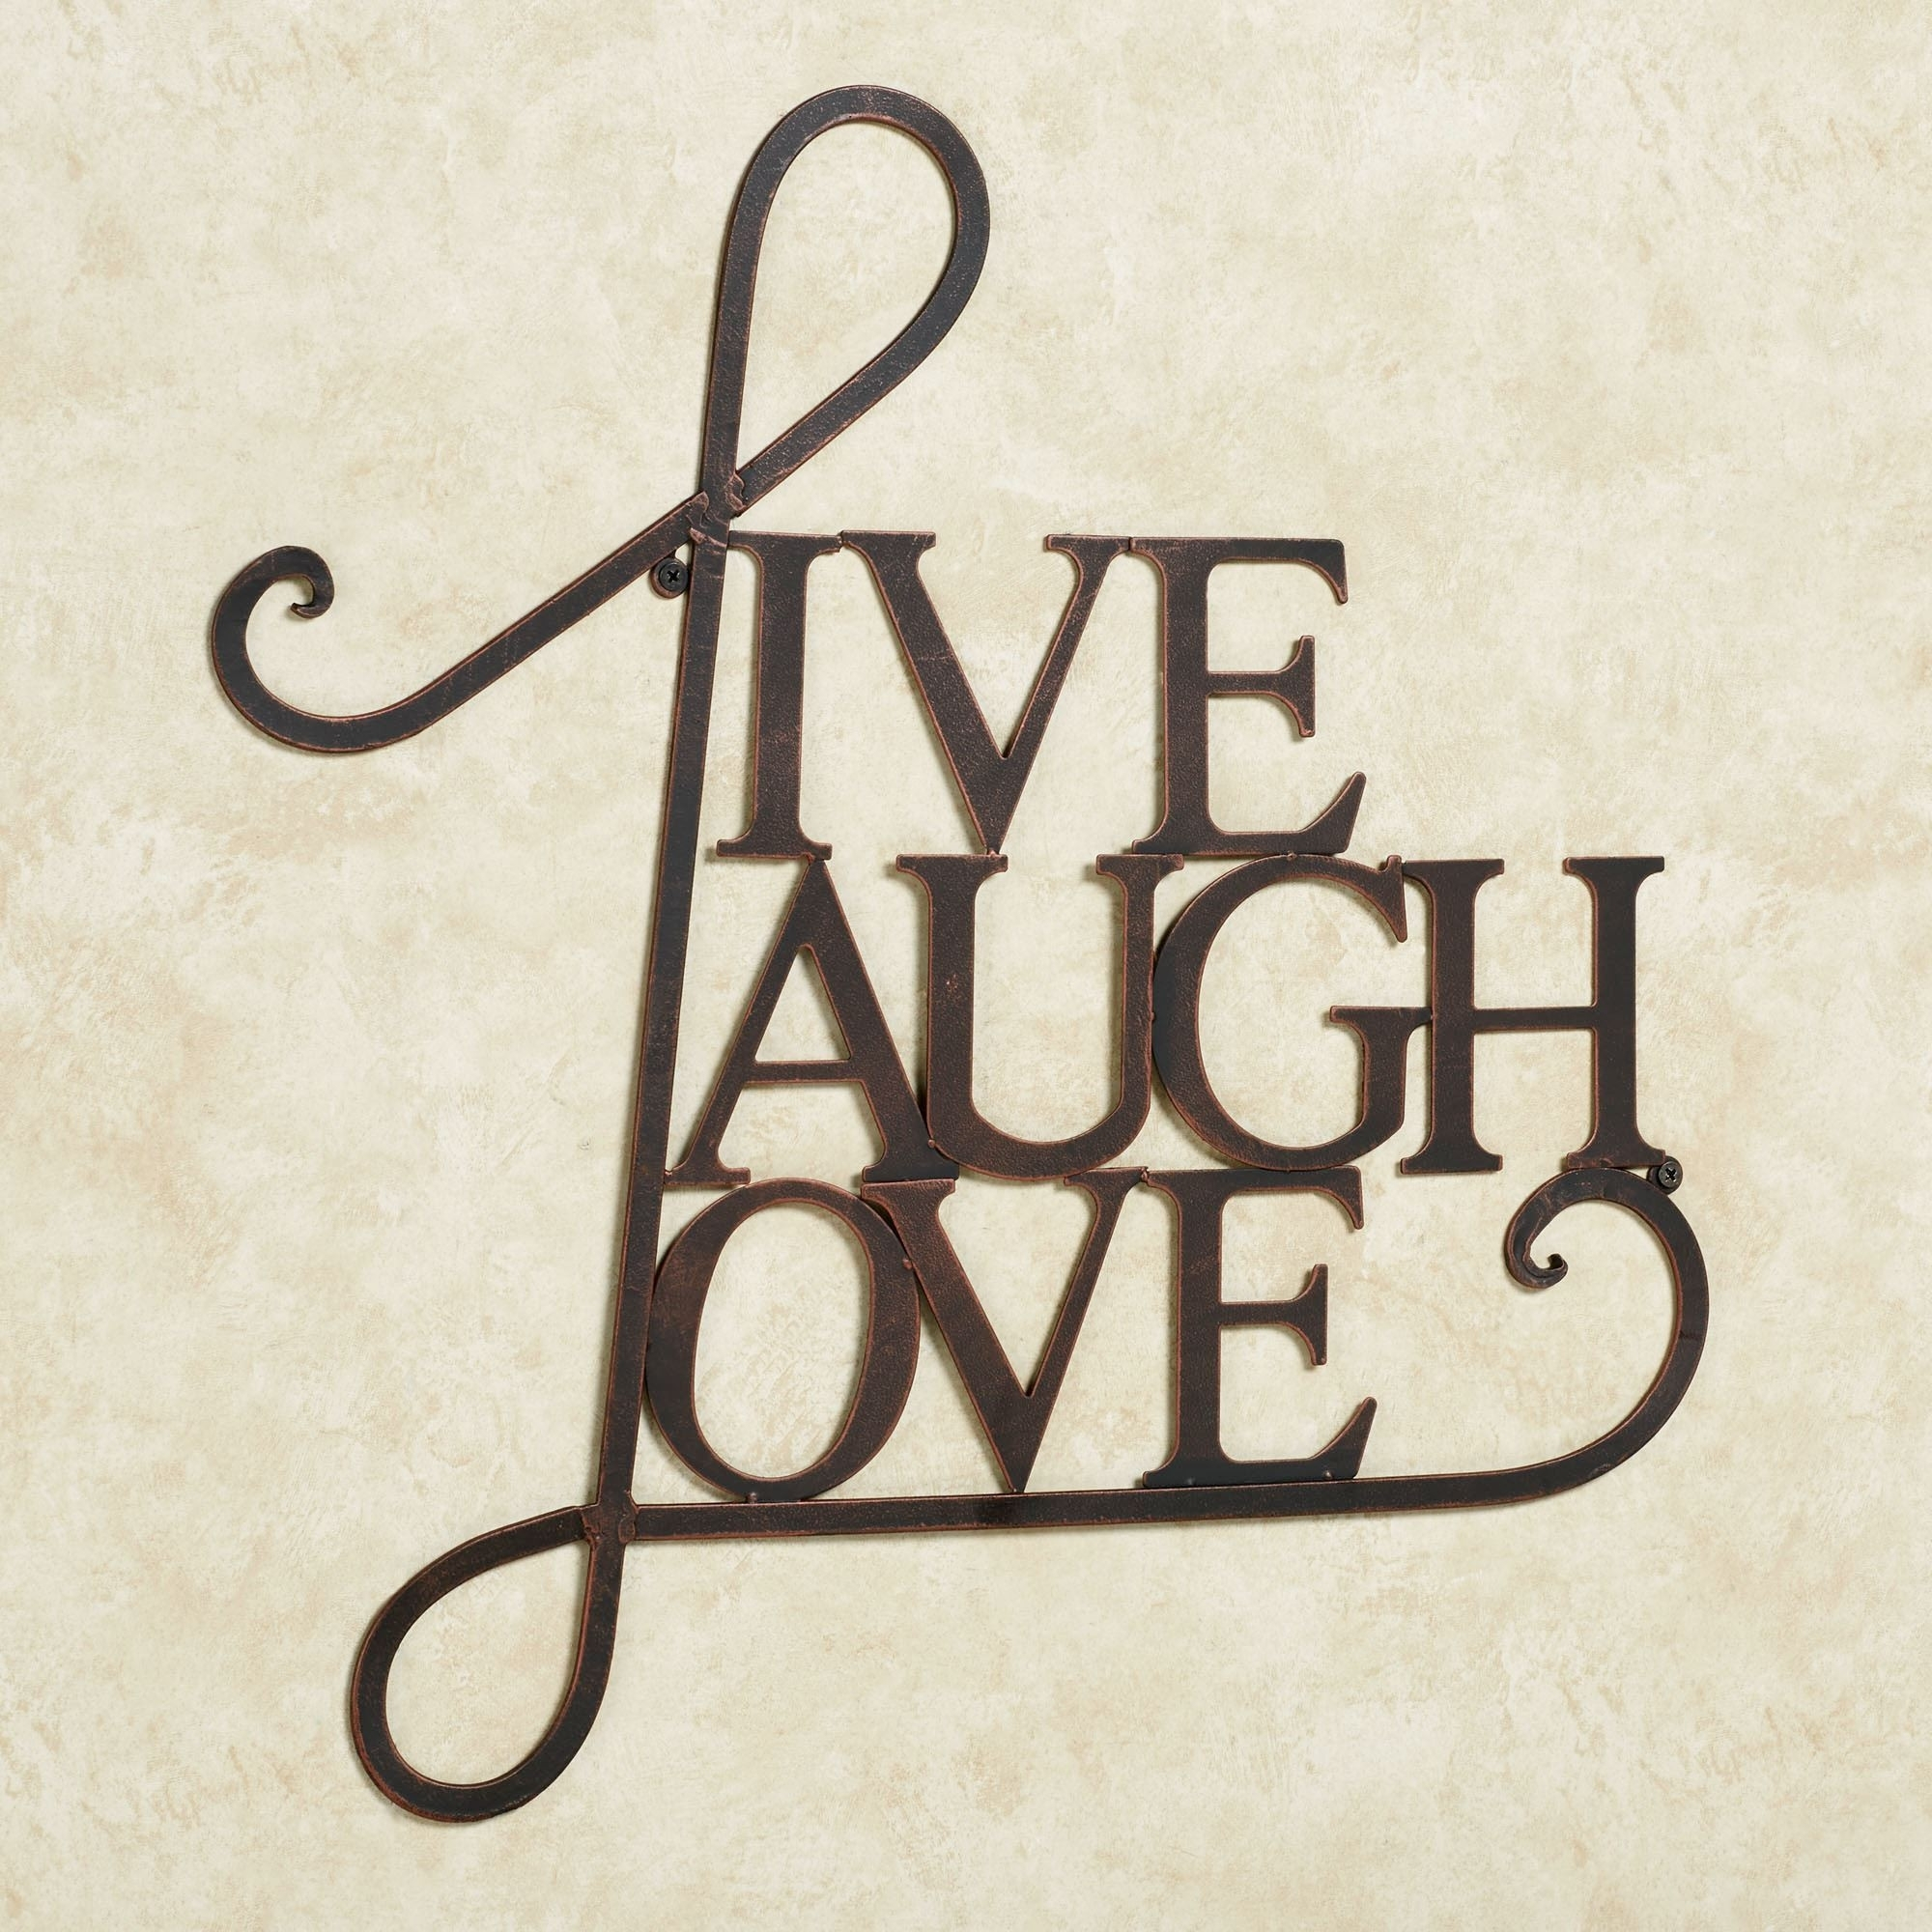 Live Laugh Love Metal Word Wall Art Fair | Bakerstreetbricolage For Most Recent Live Laugh Love Wall Art (View 7 of 20)